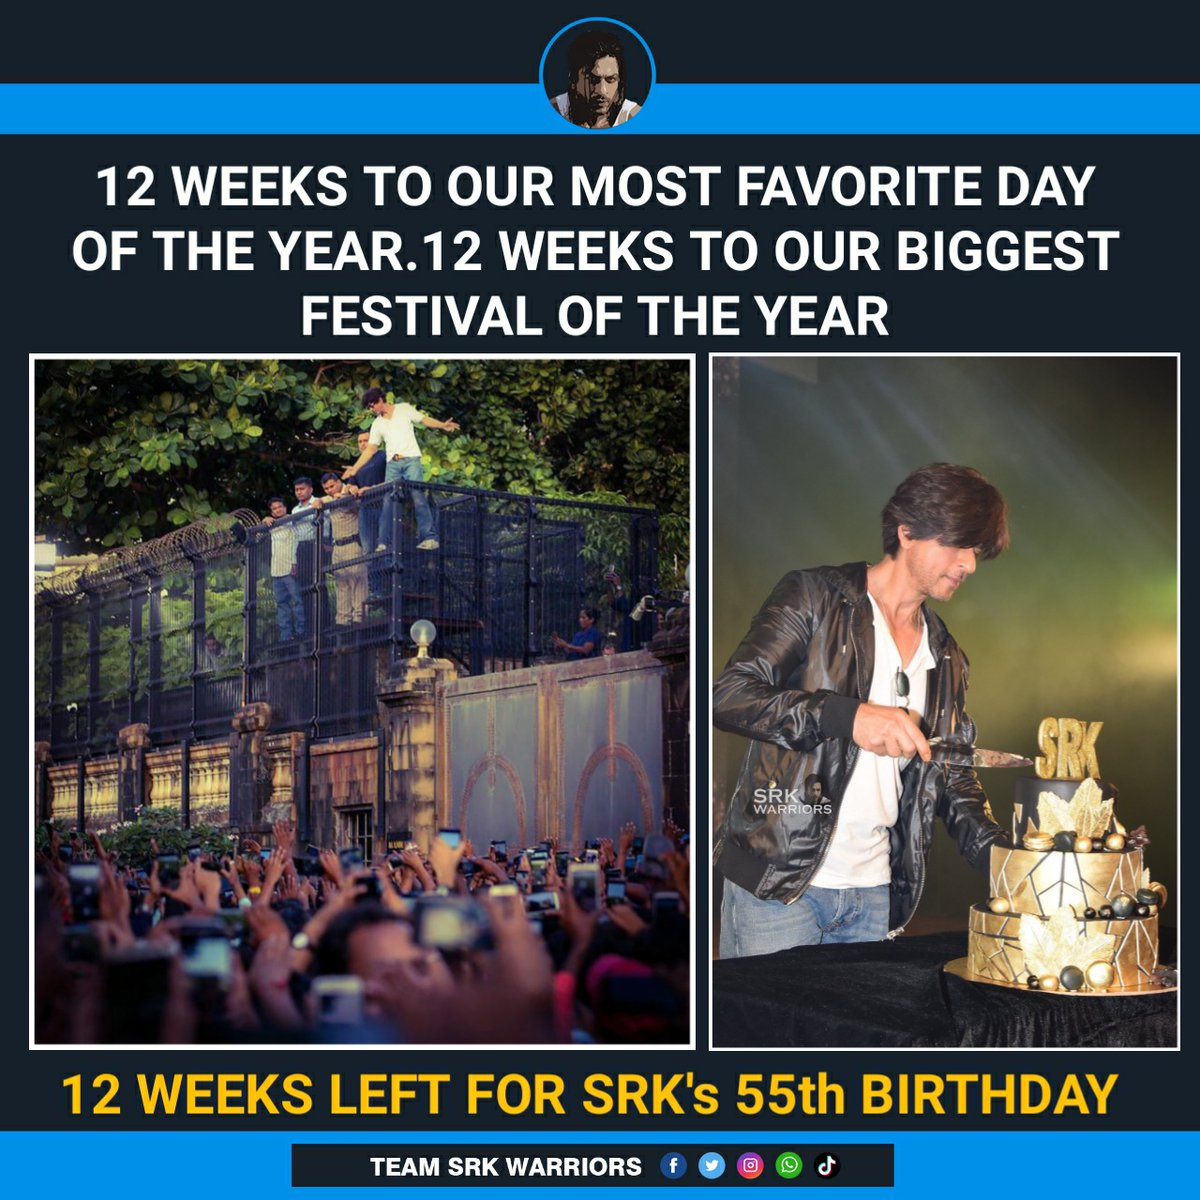 Exactly 12 Weeks to our most favourite day of the year, 12 weeks to our biggest festival of the year, 12 weeks left for Shah Rukh Khan's 55th Birthday! ❤️  #Happy55thBirthdaySRK